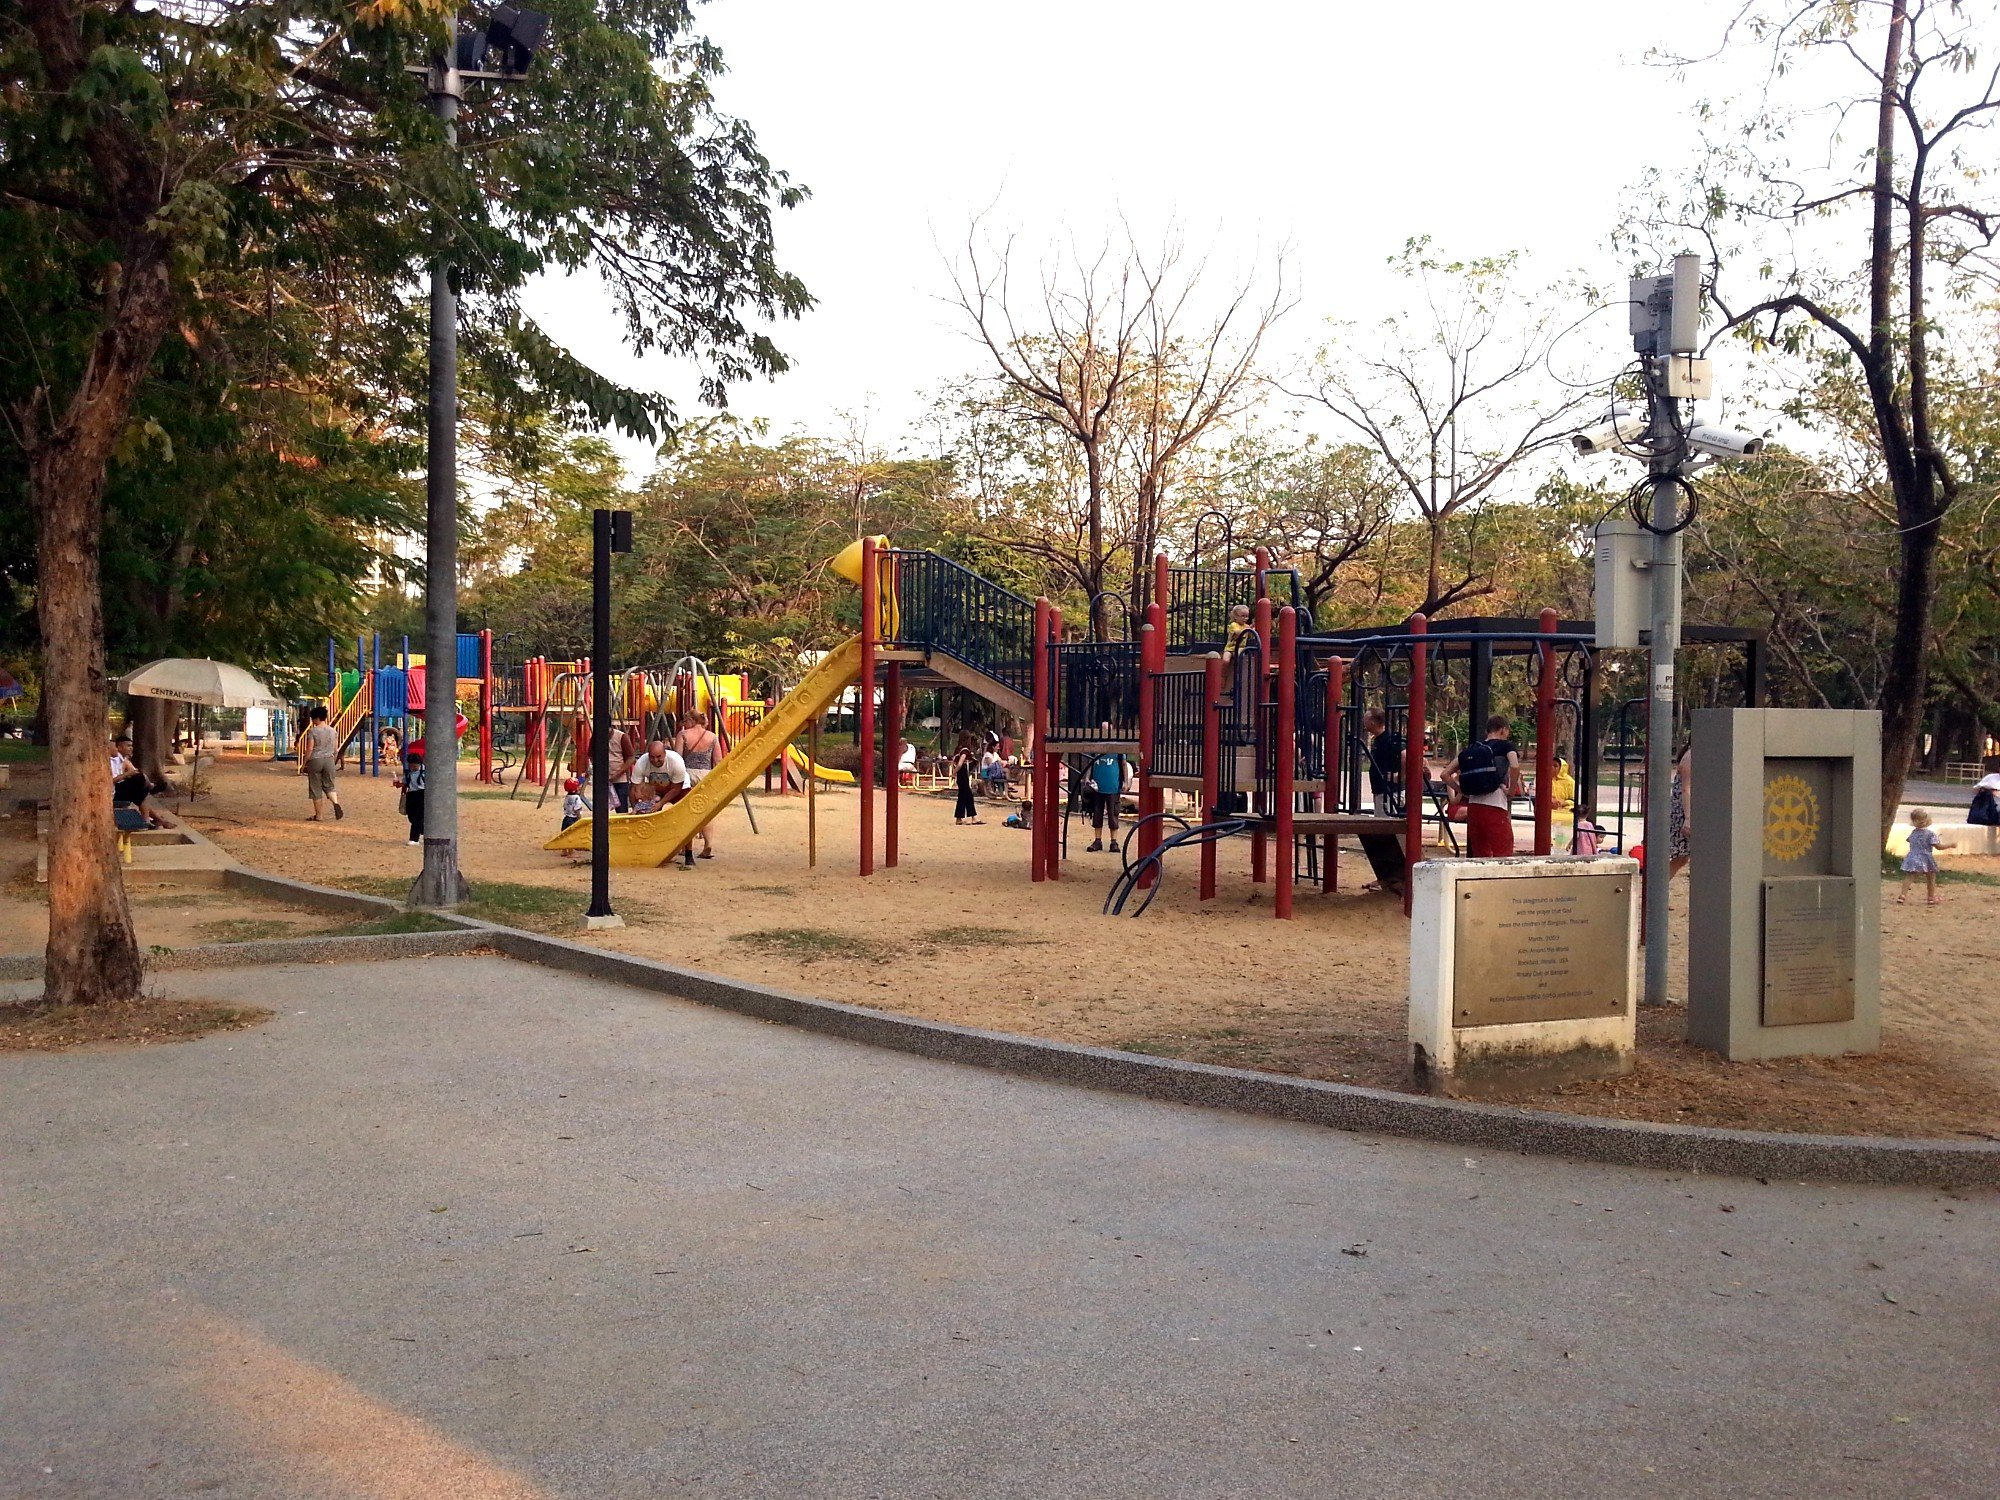 Playground at Lumphini Park